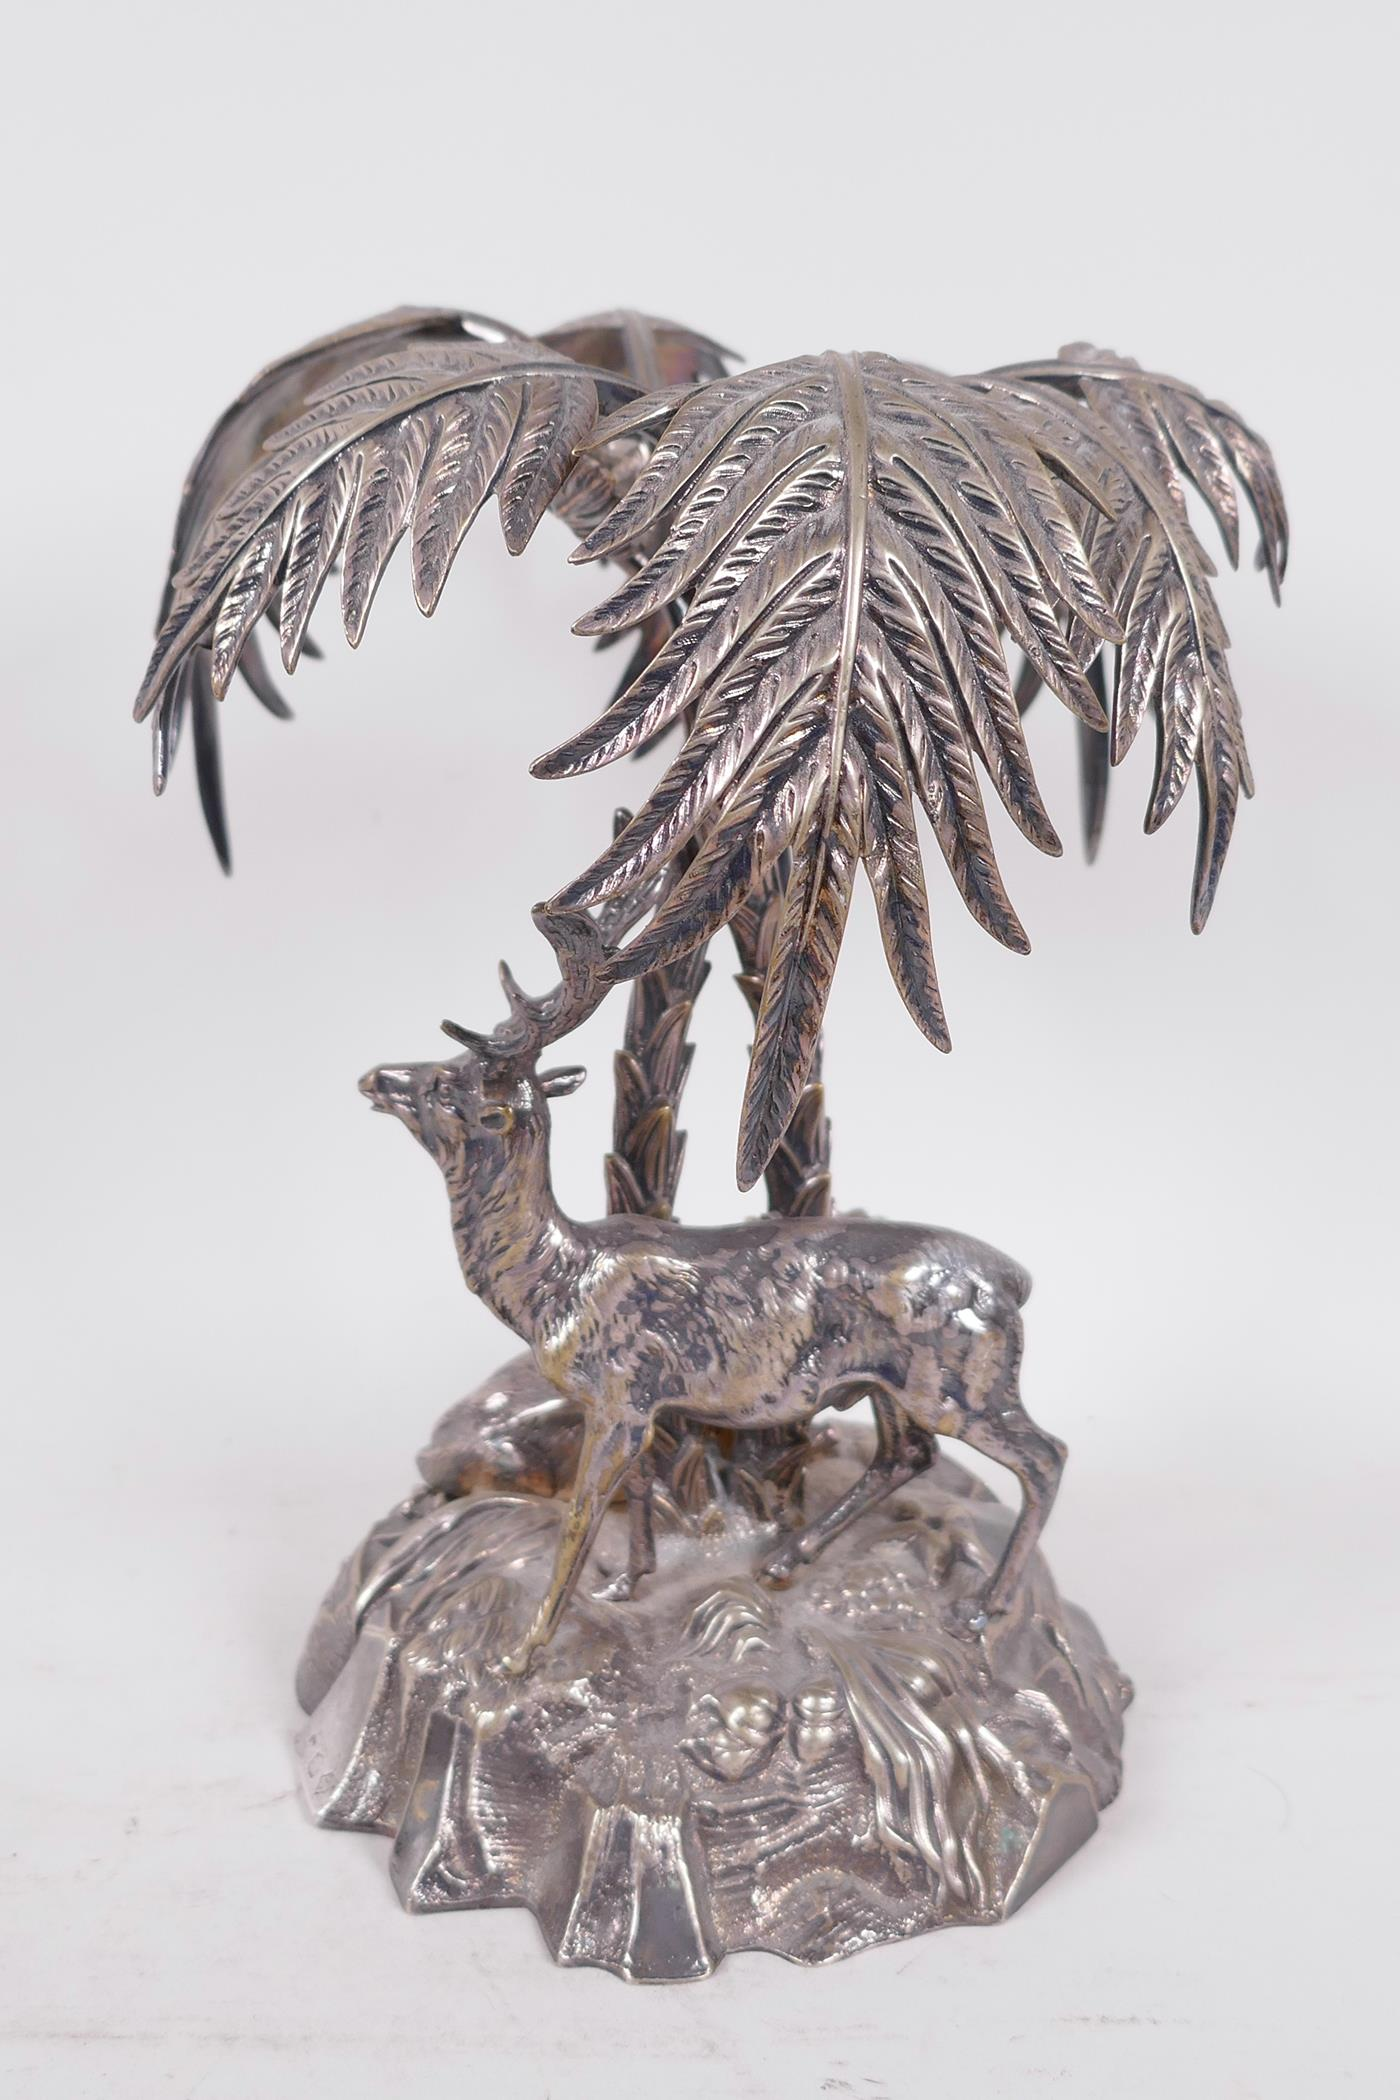 A C19th silver plated table centrepiece formed as deer under a palm tree by Thomas Bradbury and - Image 3 of 6